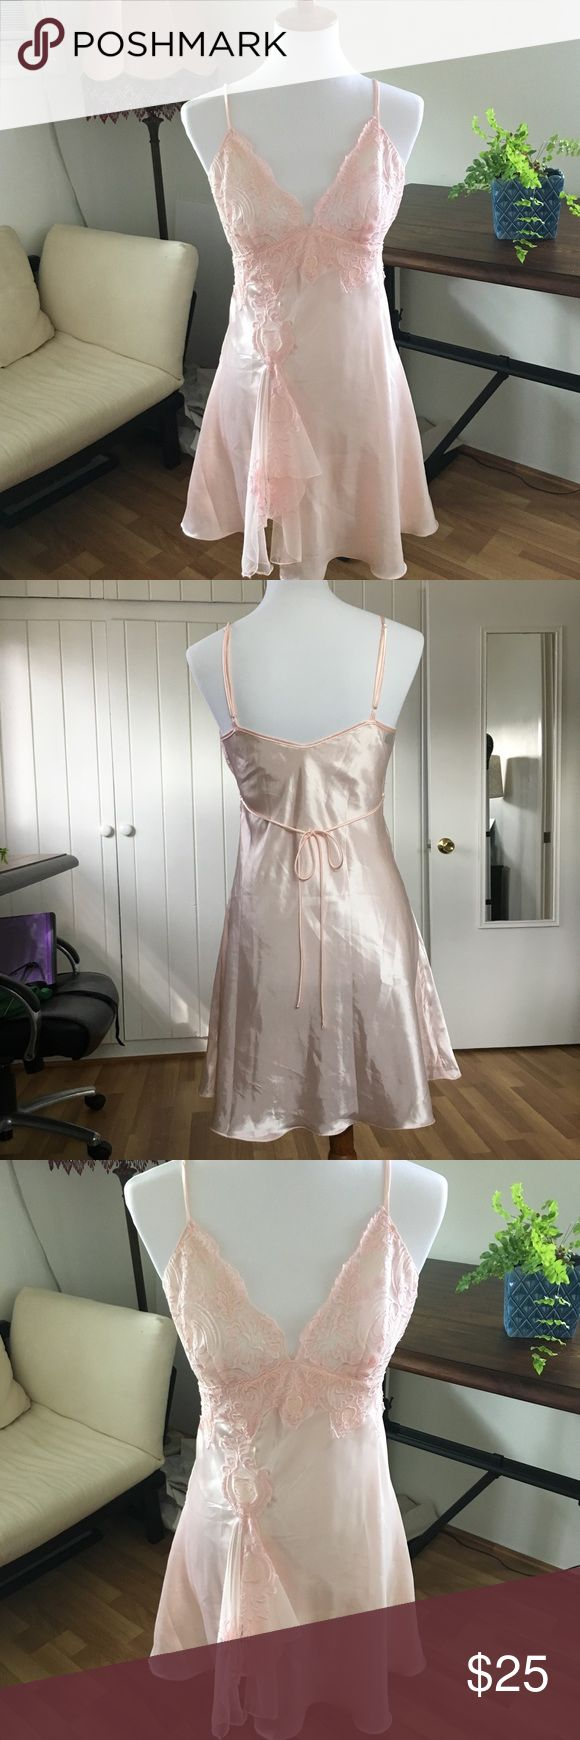 """⚡️1 DAY SALE⚡️Fleur De Lys Pretty Sexy Lingerie ✨Beautiful Fleur De Lys light pink embroidered night gown. This nightgown features a sexy lace top and a modest lace opening. This material is polyester so it will hold its shape. Delicate tie in the back makes a simple pretty bow. This has almost an hour glass shape to it. My favorite part is the lace leg opening.Chest 17"""" waist 14"""" hips 18"""". This item is in excellent lightly used condition.✨ Would make a sexy v short princess costume for…"""